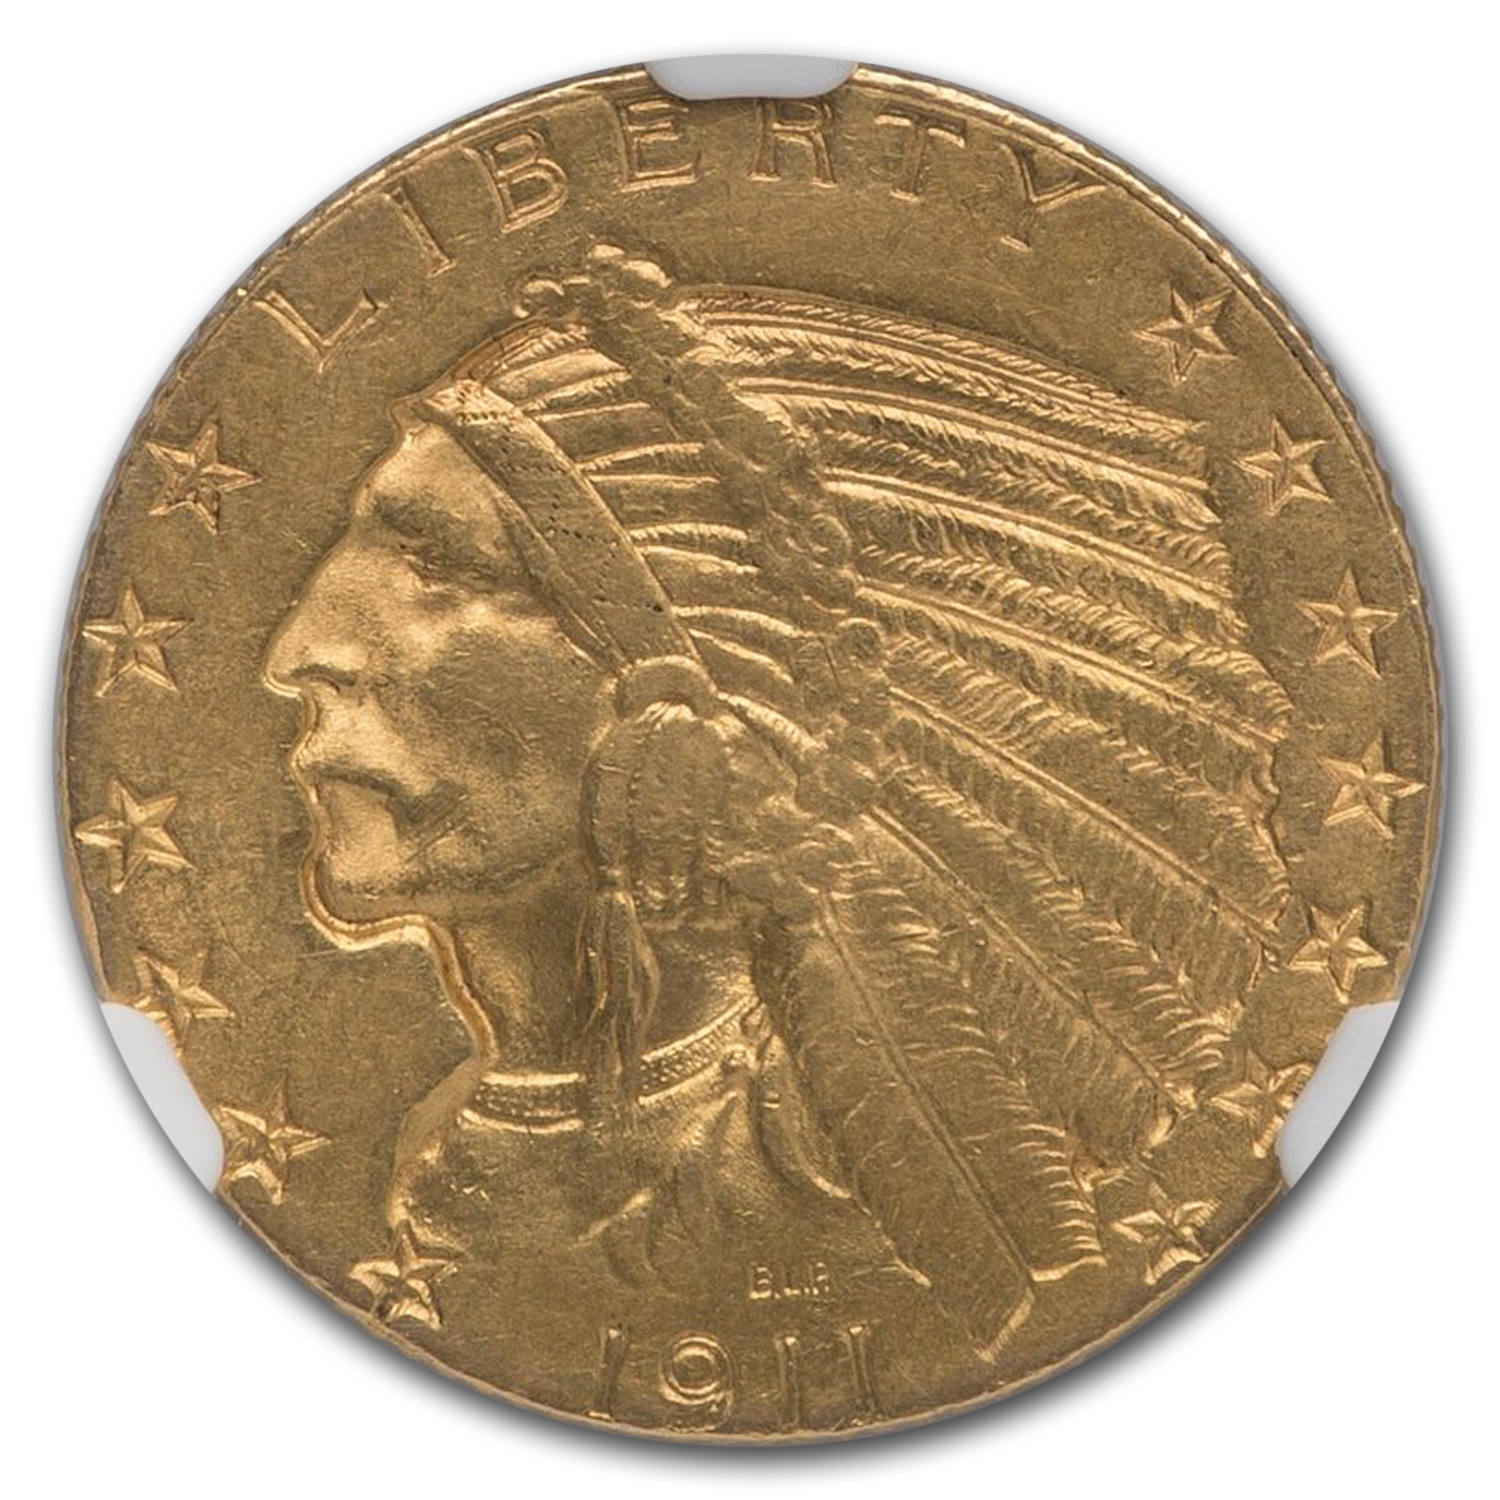 1911-S $5 Indian Gold Half Eagle - AU-55 NGC